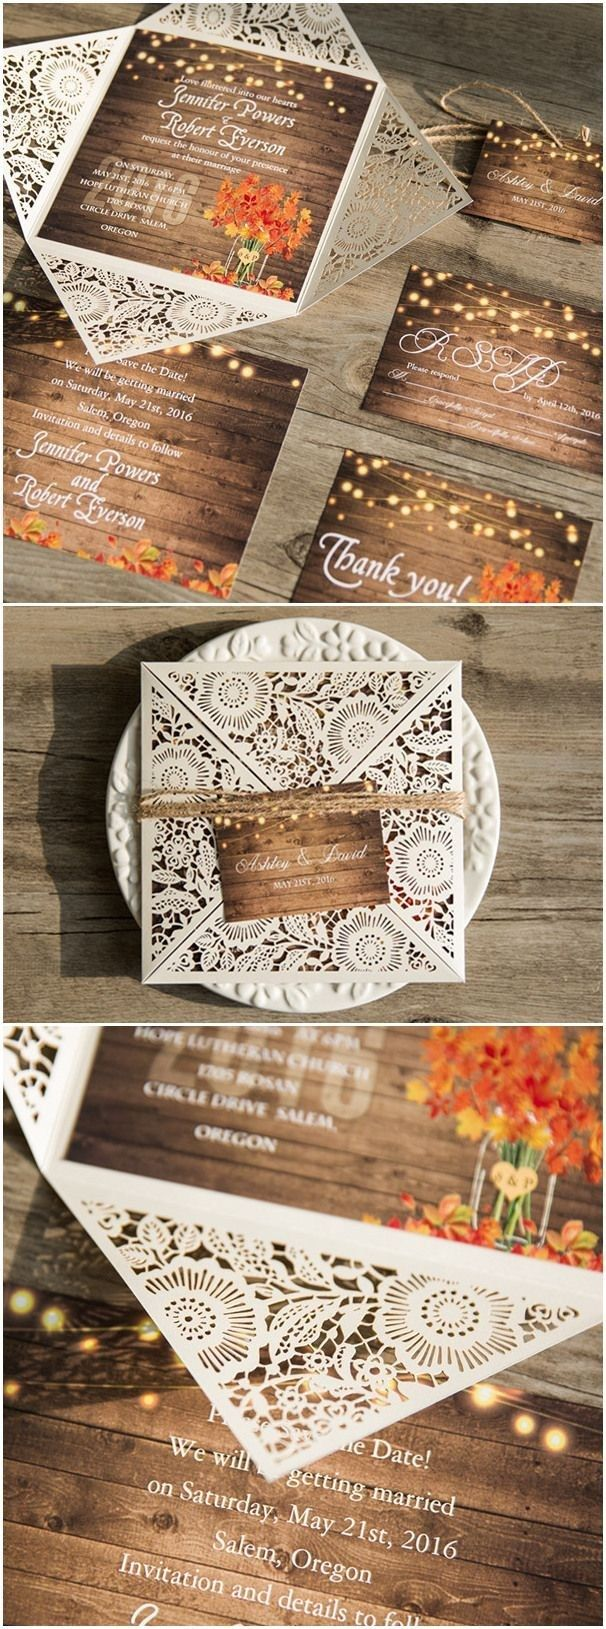 30+ Creative Image of Rustic Fall Wedding Invitations